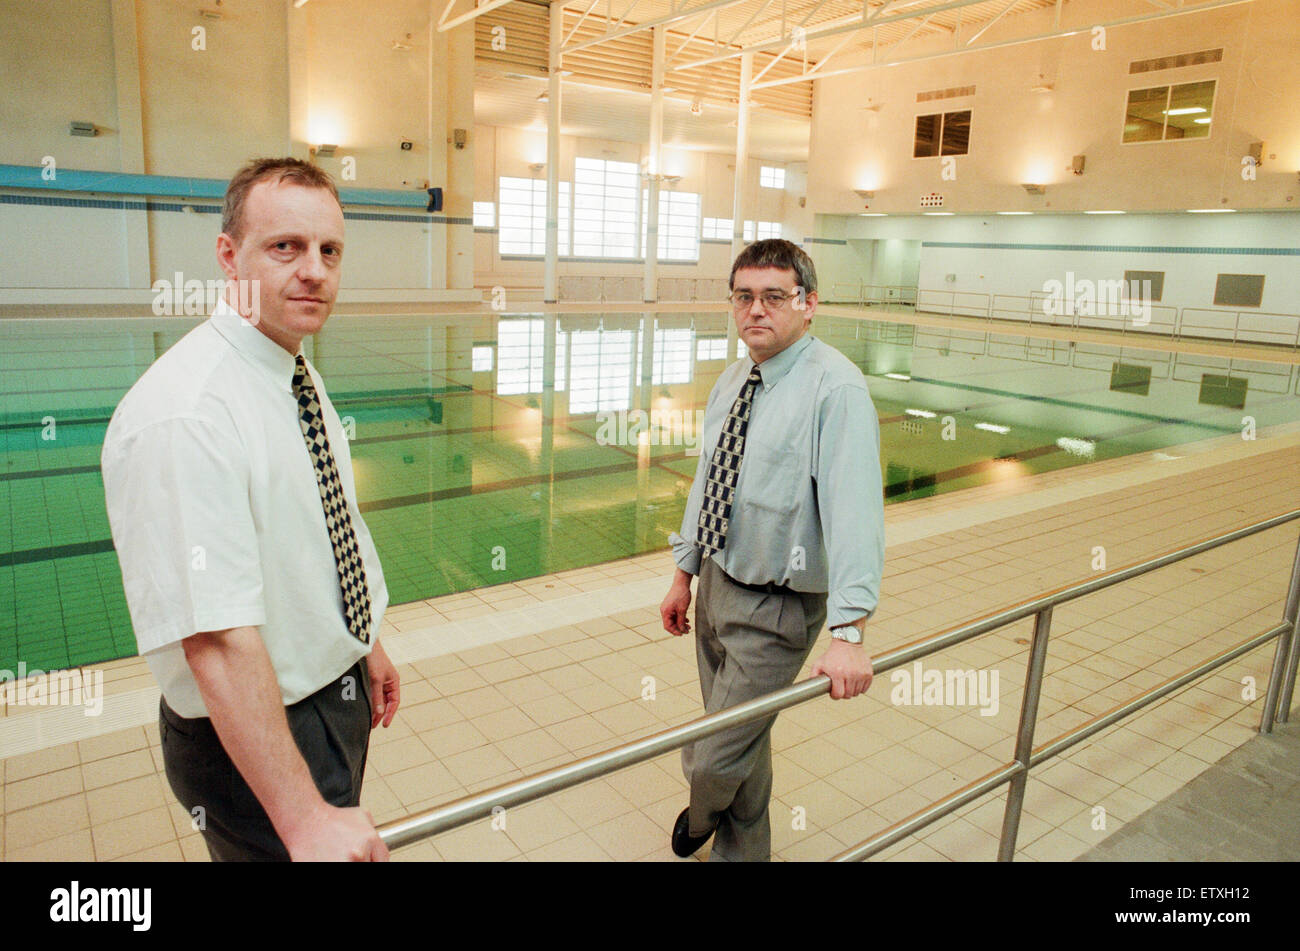 Berwick Hills New 25 Metre Pool At The Neptune Centre Middlesbrough Stock Photo 84177326 Alamy